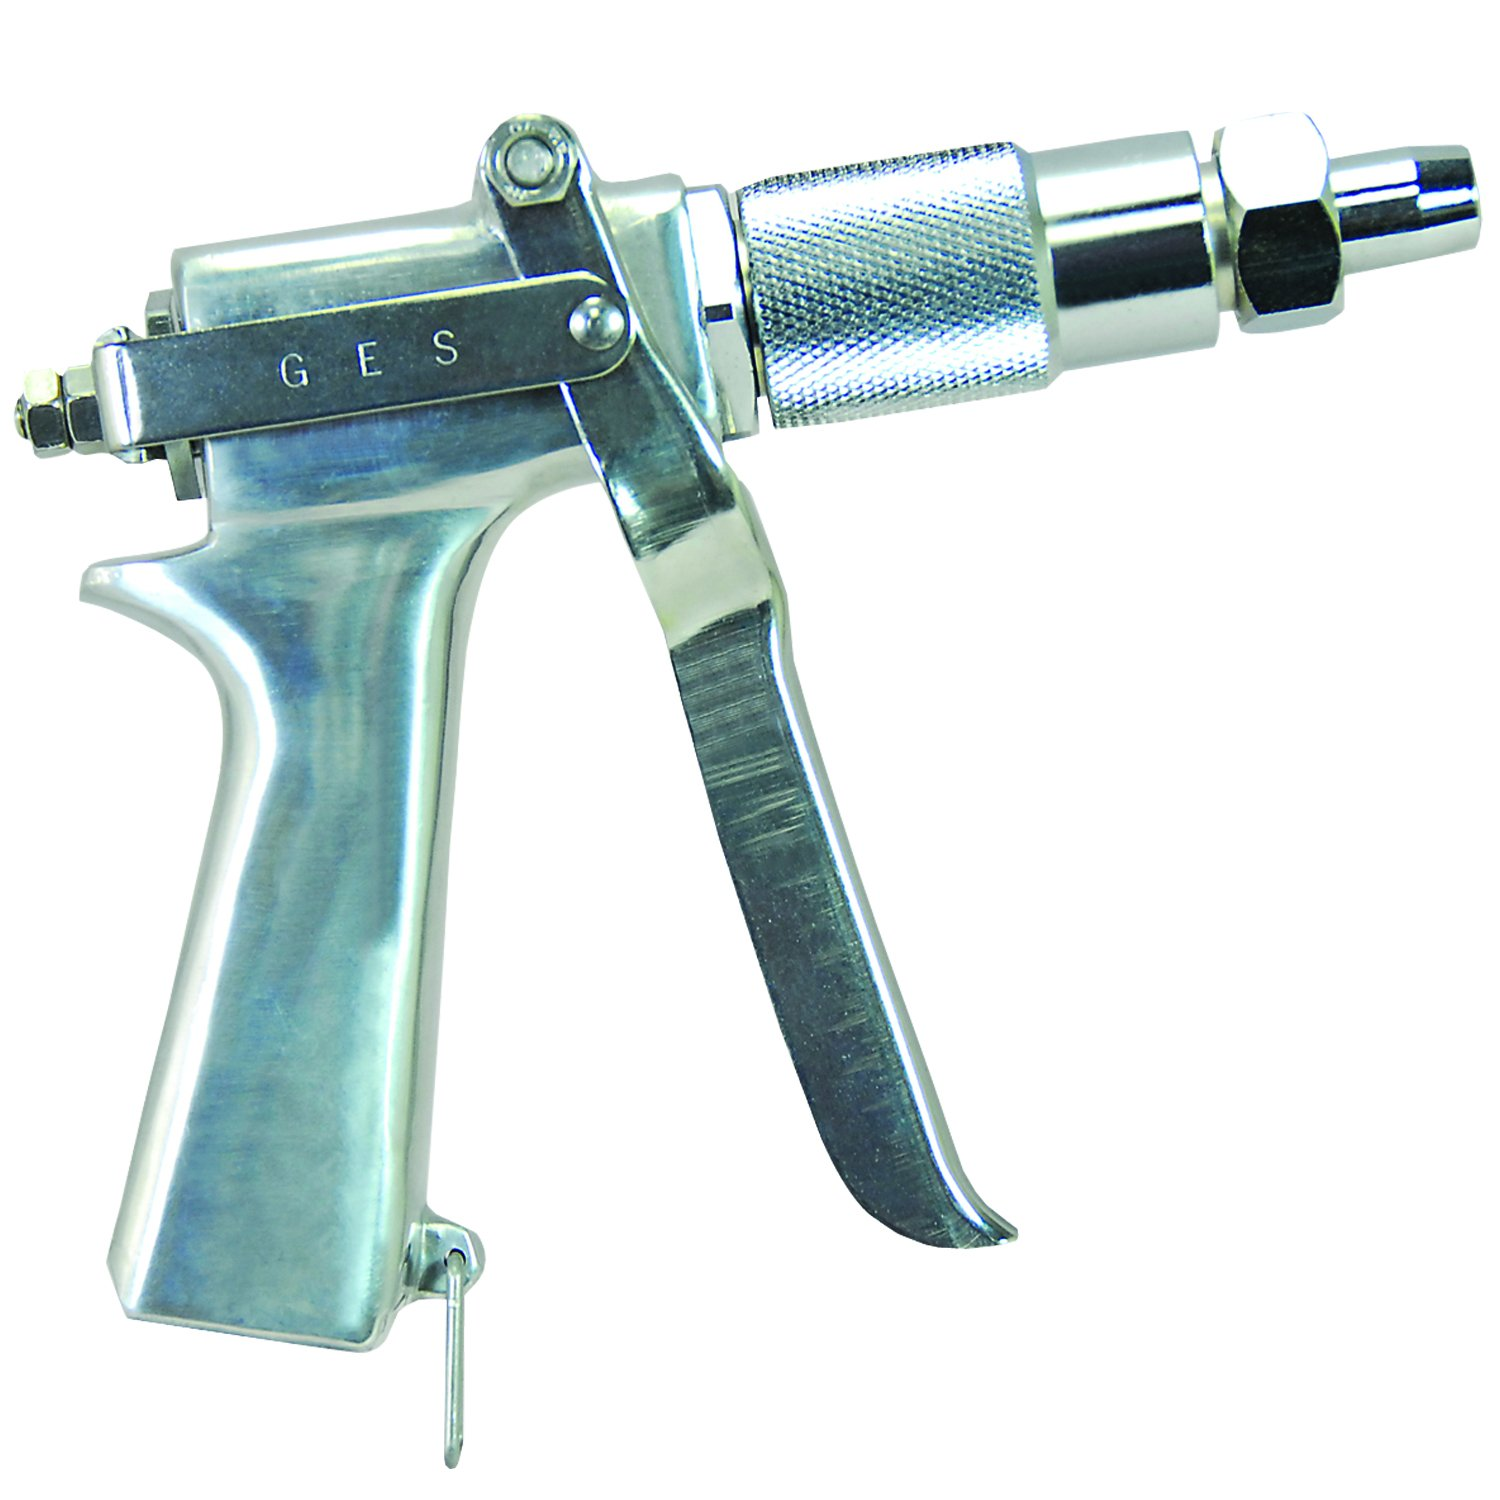 Hudson 38505 Ges HeavyDuty Spray Gun by HD Hudson